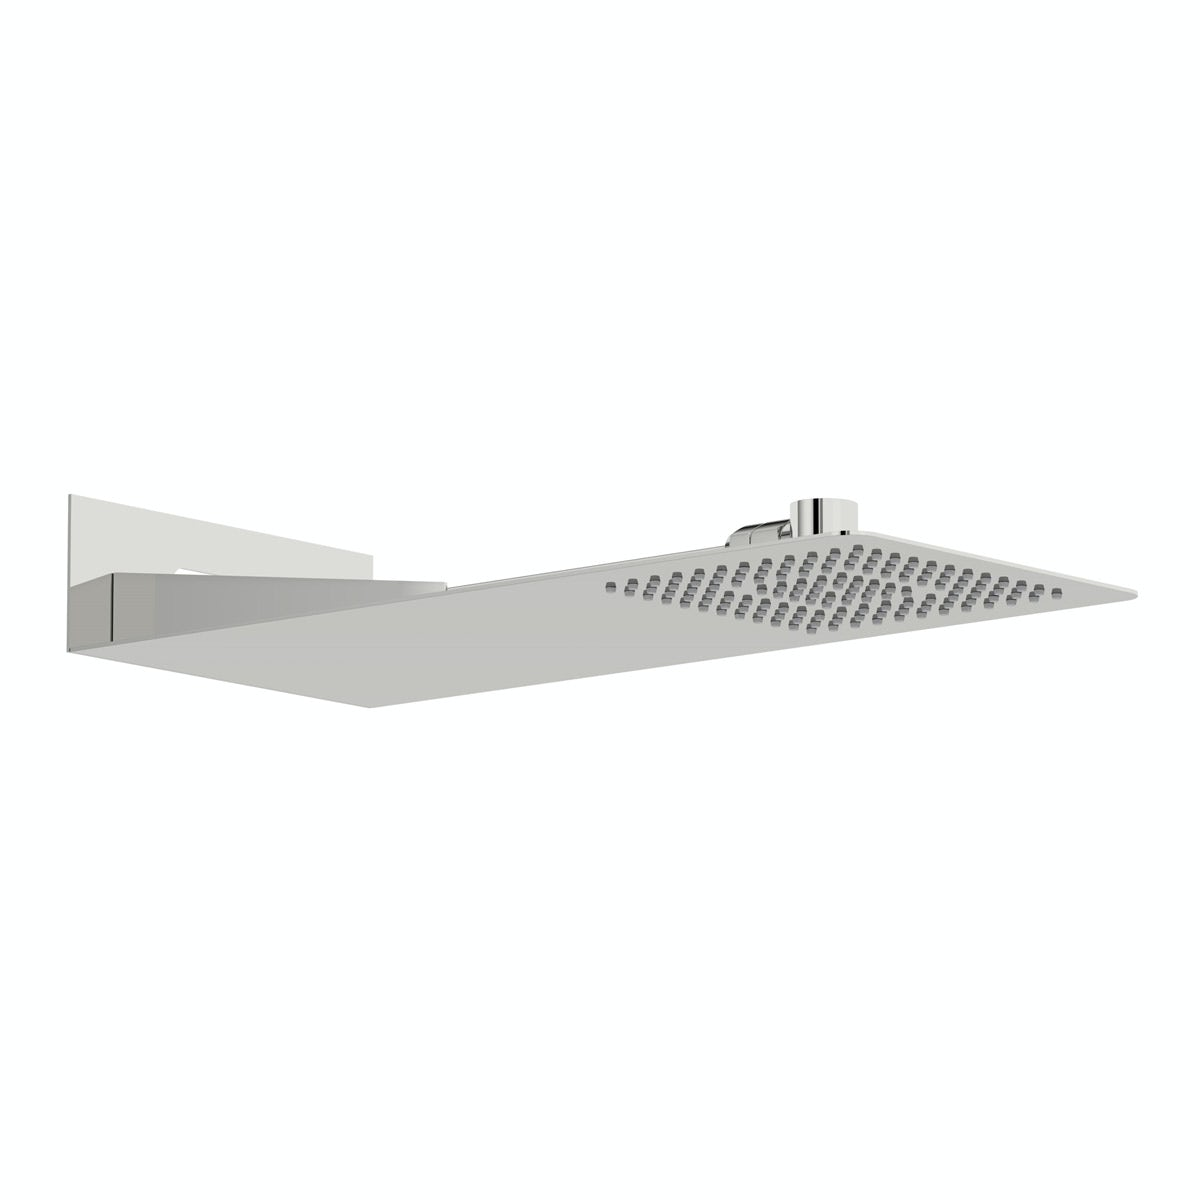 Mode Ando waterfall shower head